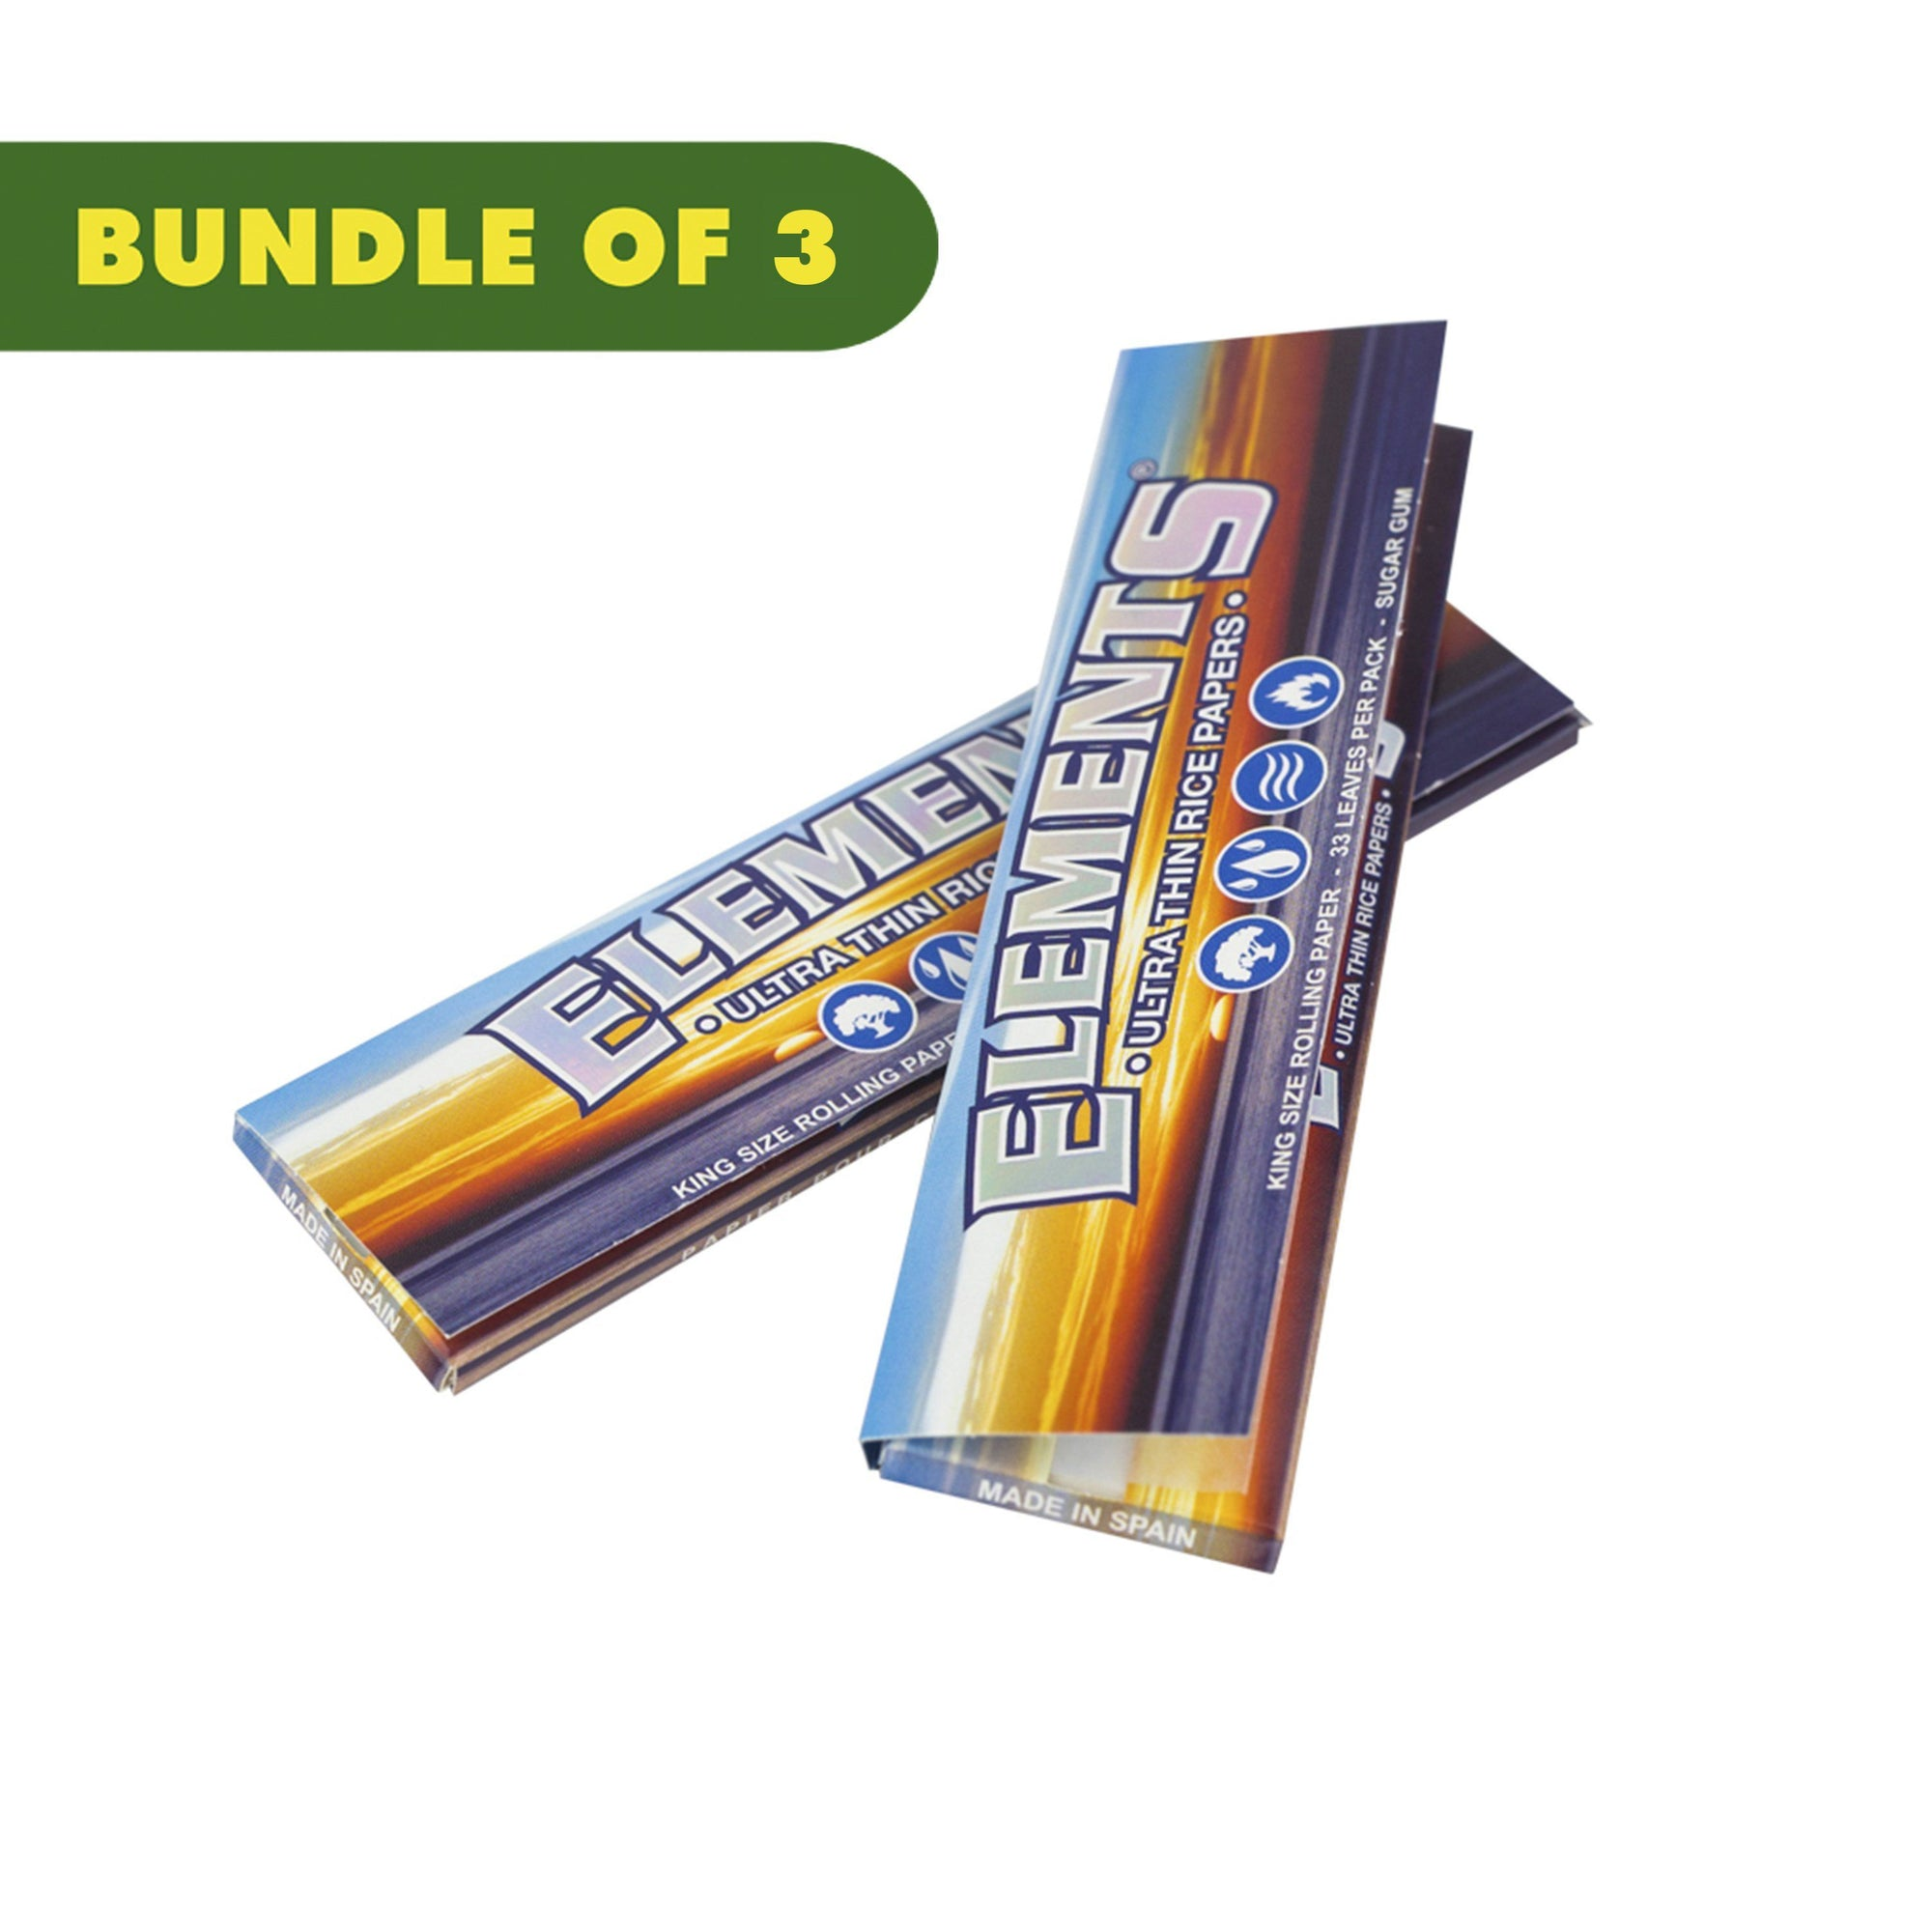 2 pack of closed ultra-thin rollings papers with classic Elements logo ocean and sunset image